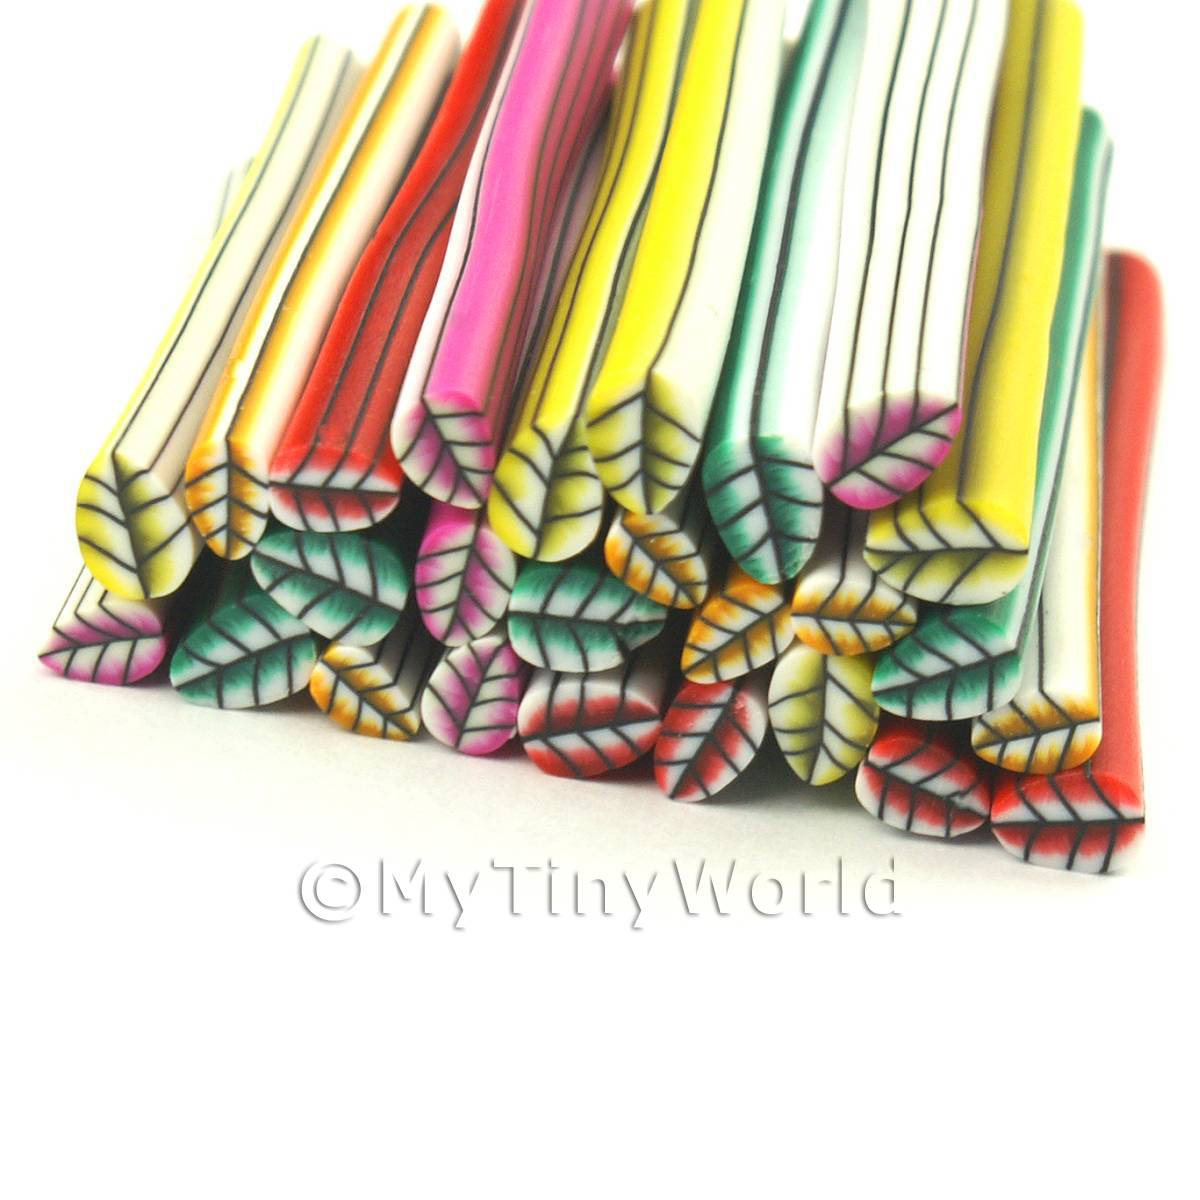 25 Mixed Leaf Canes - Nail Art